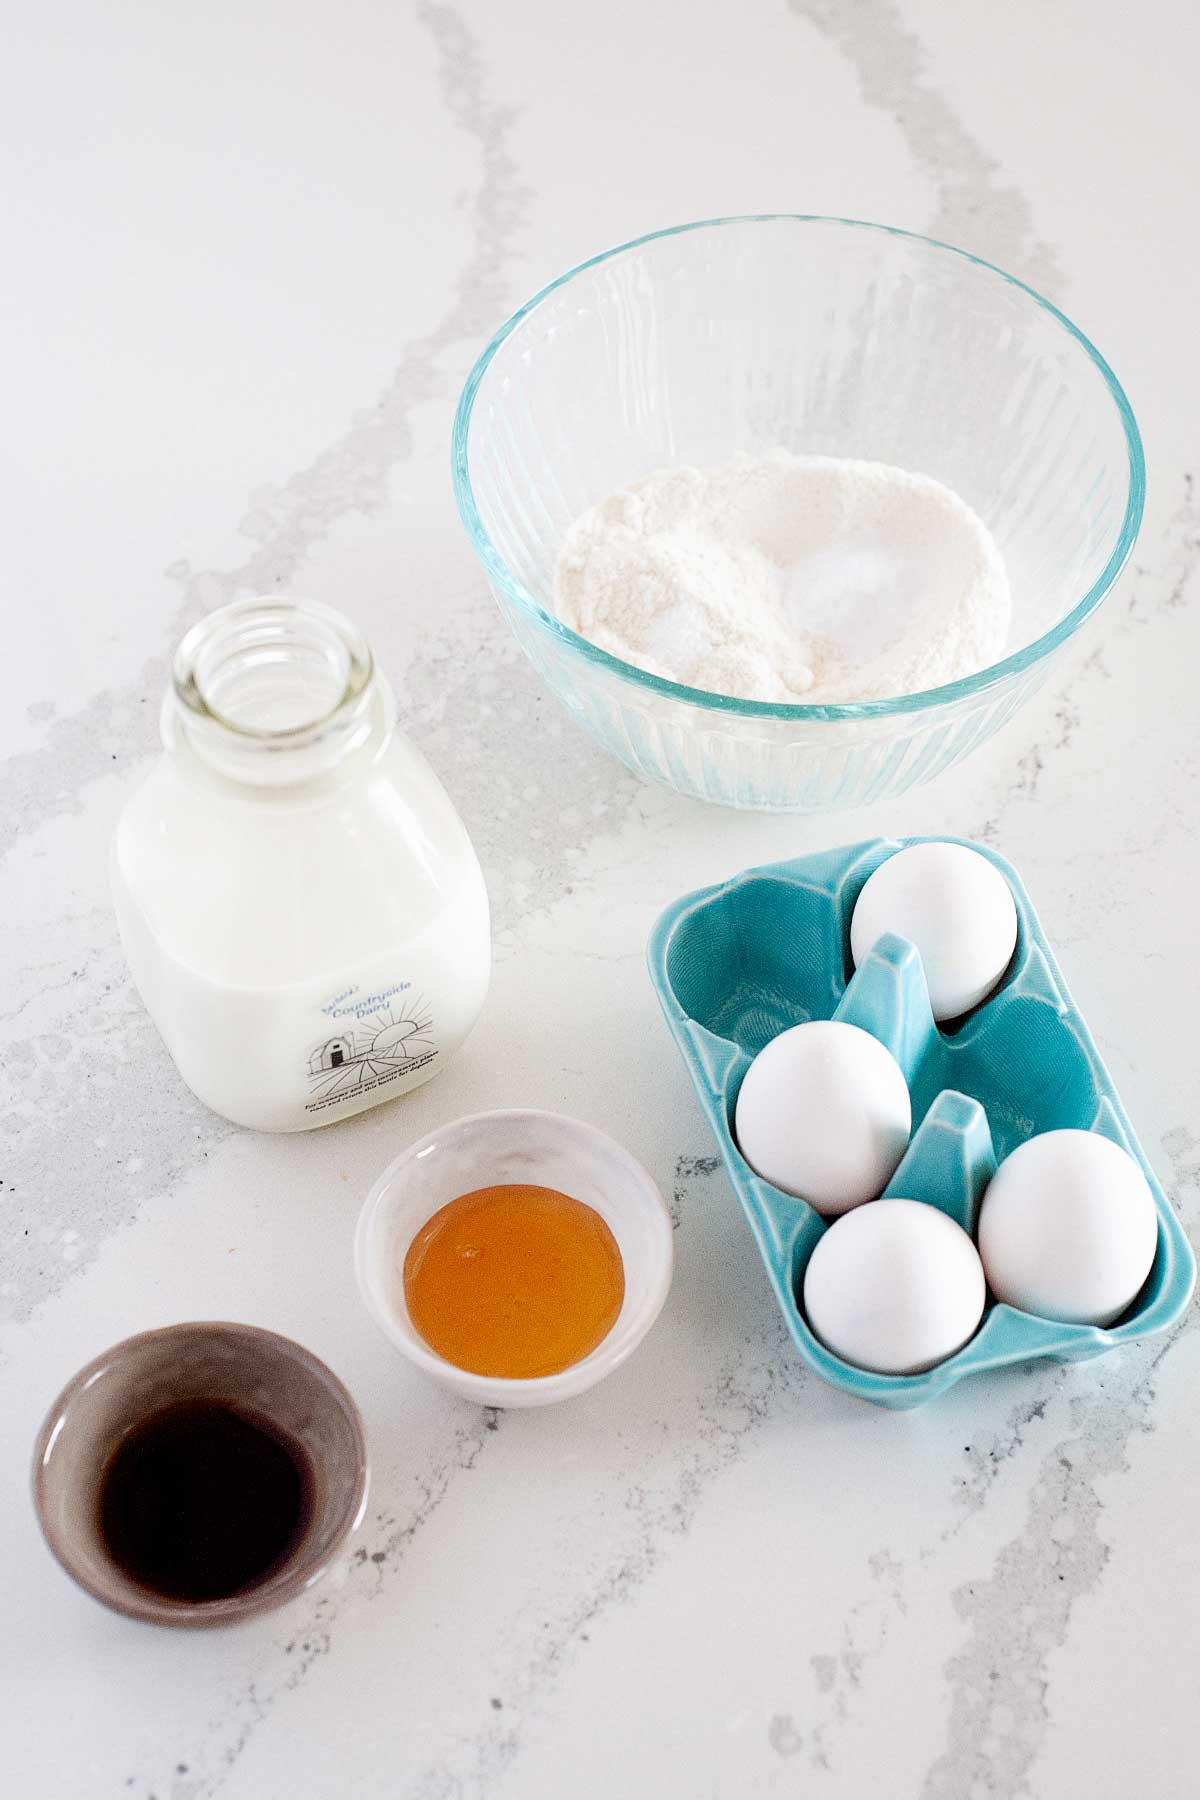 ingredients for coconut flour pancakes laid out on countertop